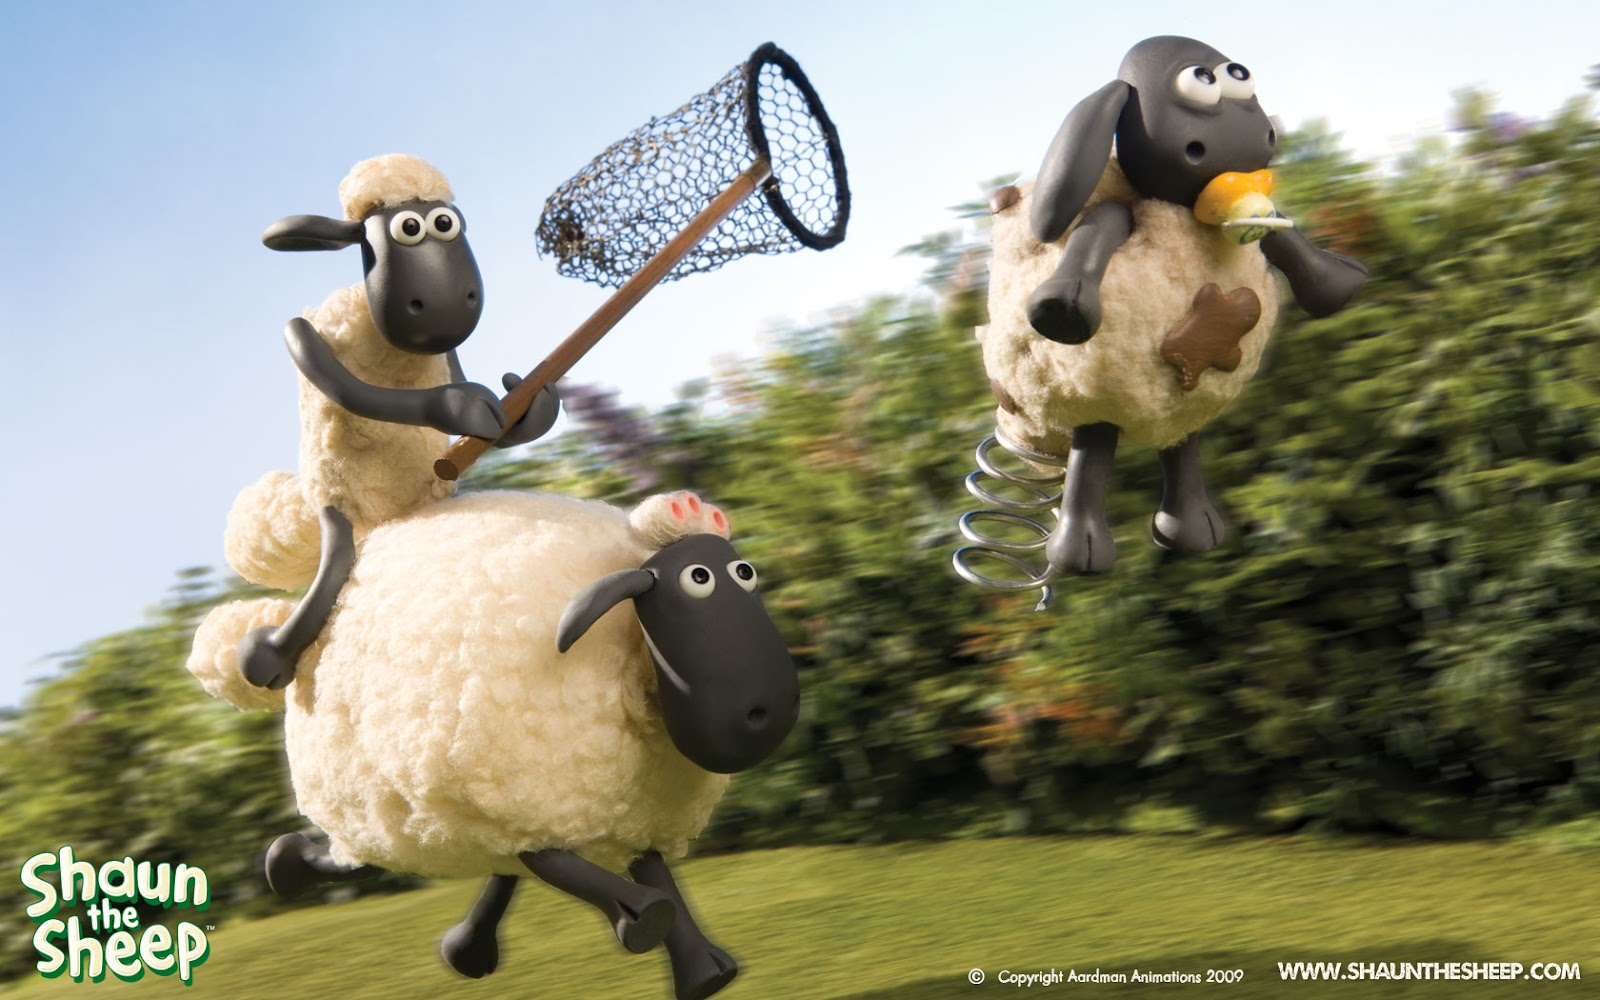 http://2.bp.blogspot.com/-tCaVfbwh2DQ/TwQvTv5iipI/AAAAAAAAEzM/7skRZ9aAAQE/s1600/Shaun+the+Sheep+Wallpaper+014.jpg